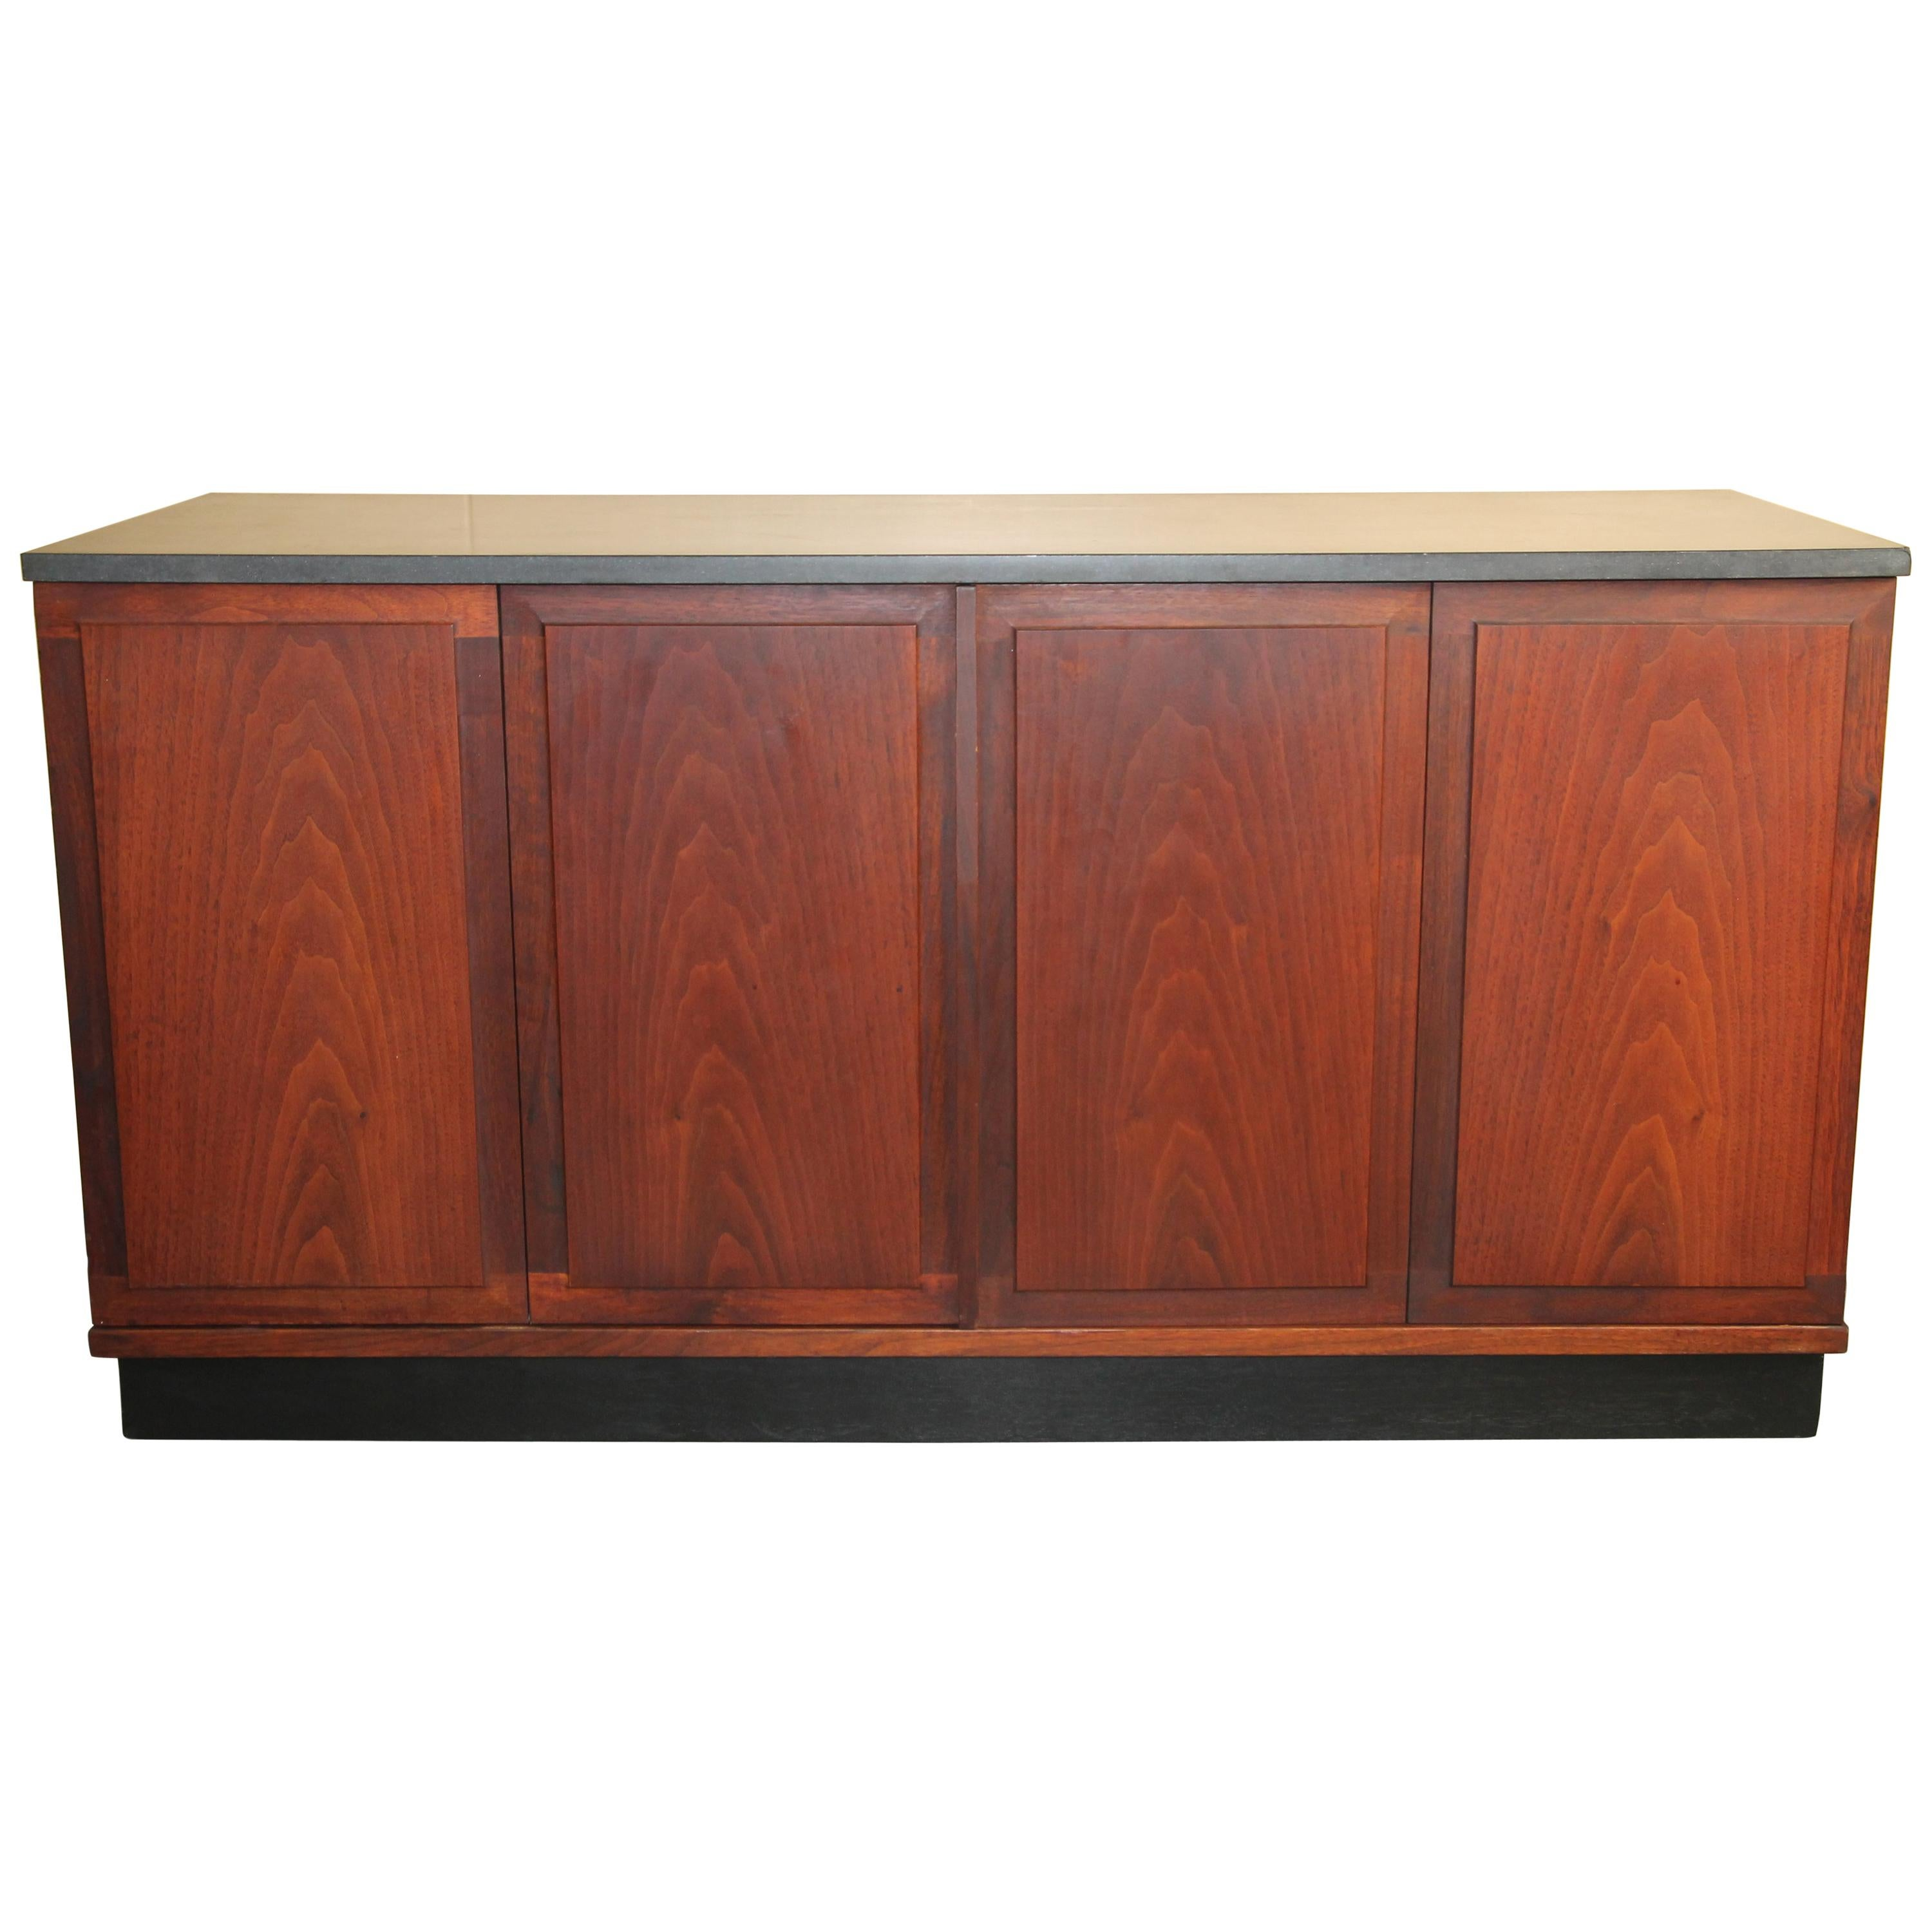 Ordinaire Walnut Credenza With Slate Top By Jack Cartwright For Founders Furniture  Co. For Sale